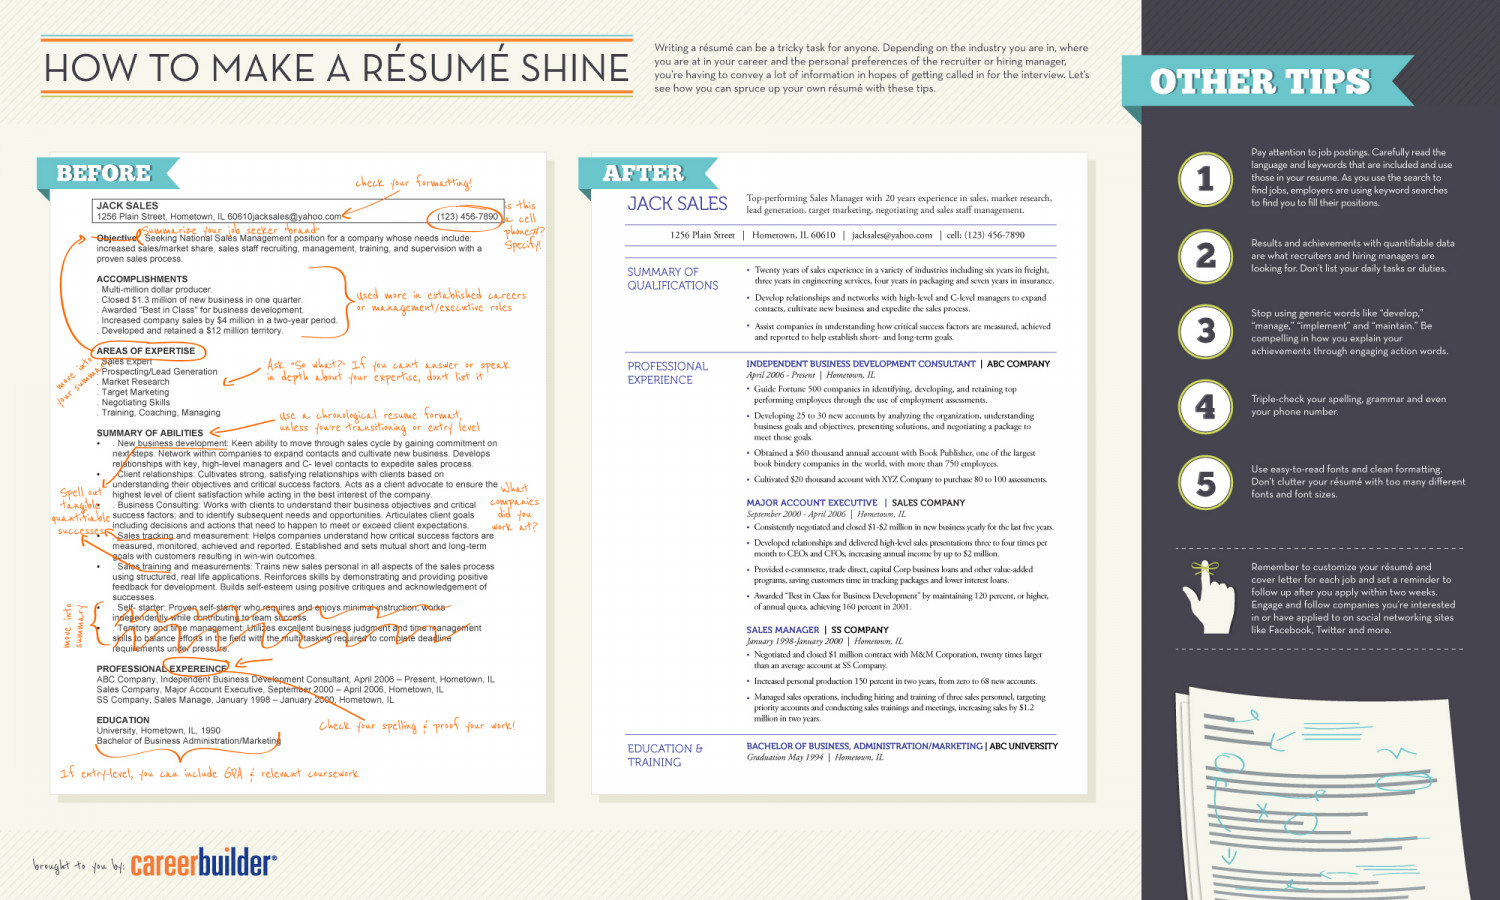 How To Make A Rsum Shine Visual